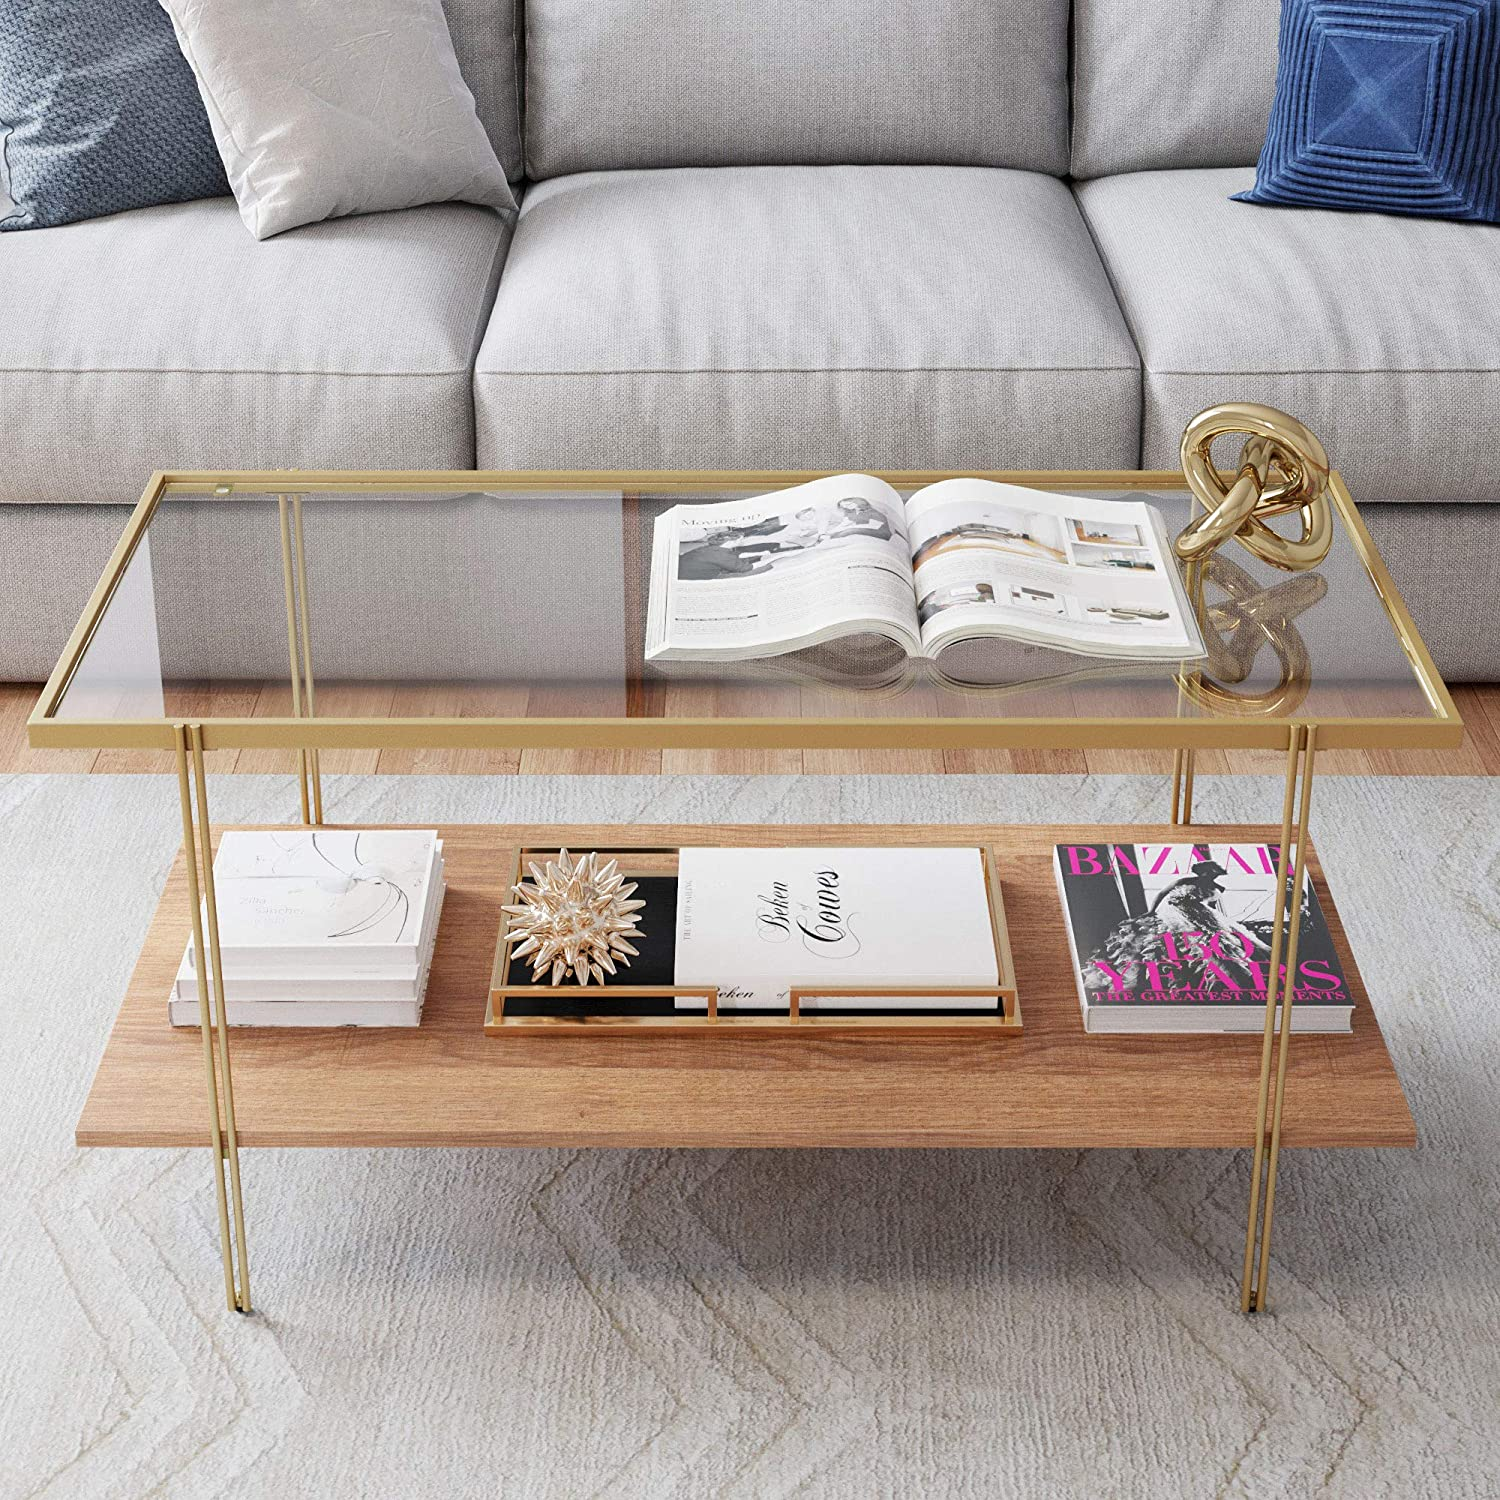 Nathan James Asher Mid Century Rectangle Coffee Table Glass Top And Rustic Oak Storage Shelf With Sleek Brass Metal Legs Gold Furniture Decor